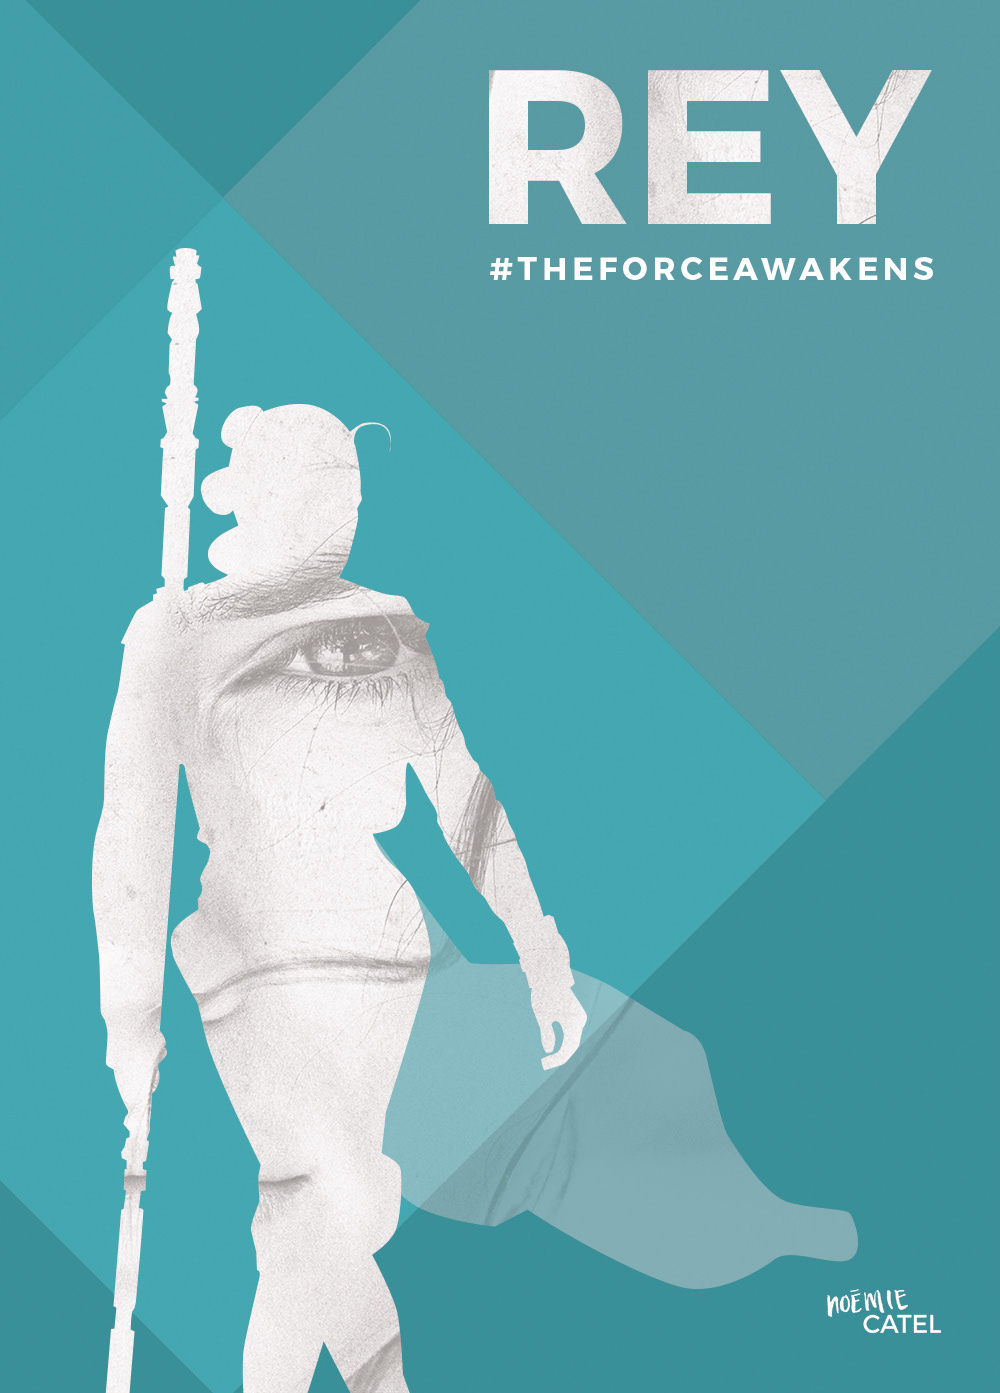 The Force Awakens Projects Photos Videos Logos Illustrations And Branding On Behance